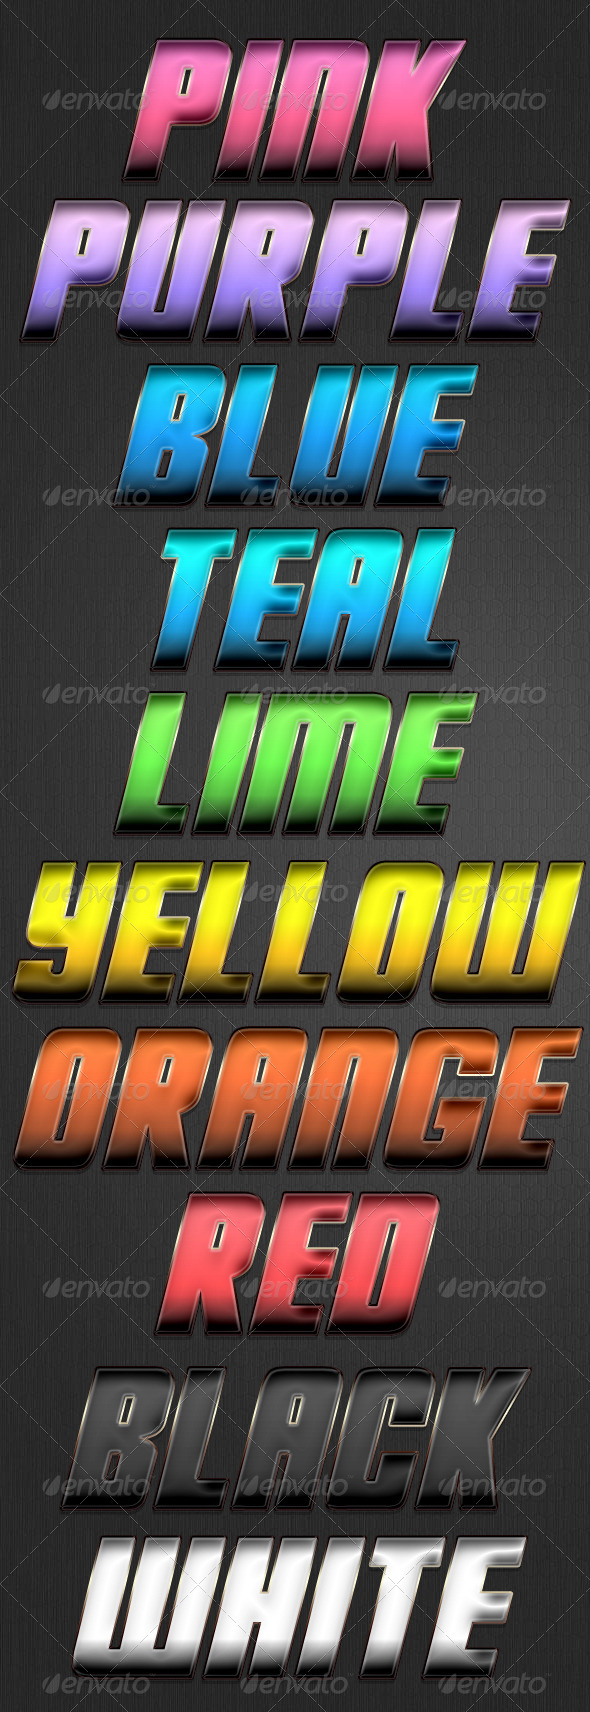 Sun Spots Style - Text Effects Styles